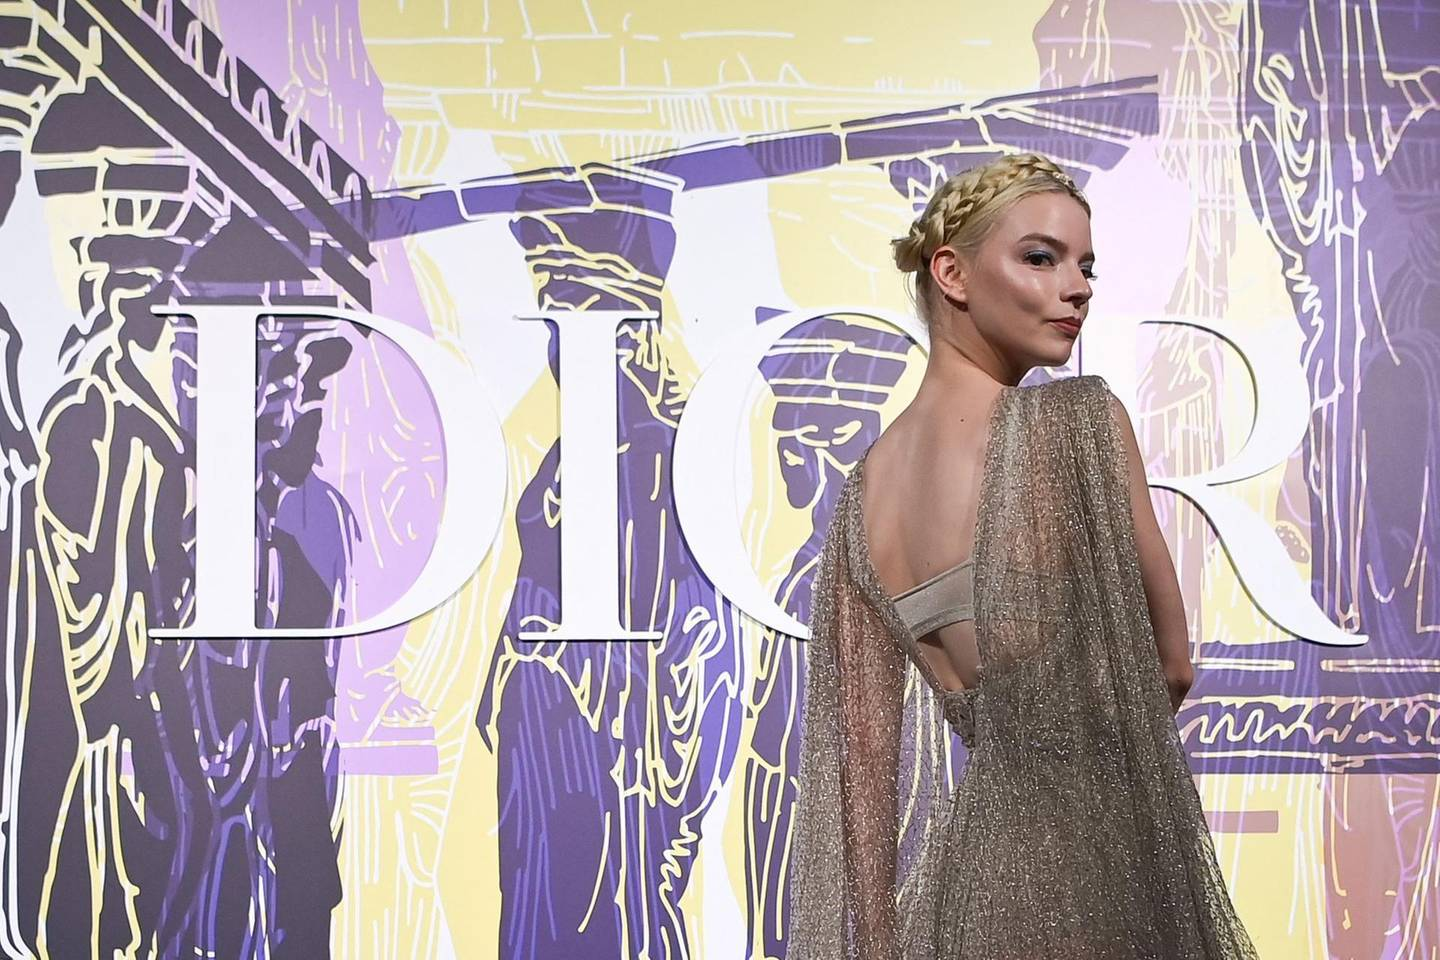 American-born Argentine-British actress and model Anya Taylor-Joy poses during the photocall before the 2022 Dior Croisiere (Cruise) fashion show, at the Panathenaic Stadium, in Athens, on June 17, 2021. / AFP / ARIS MESSINIS